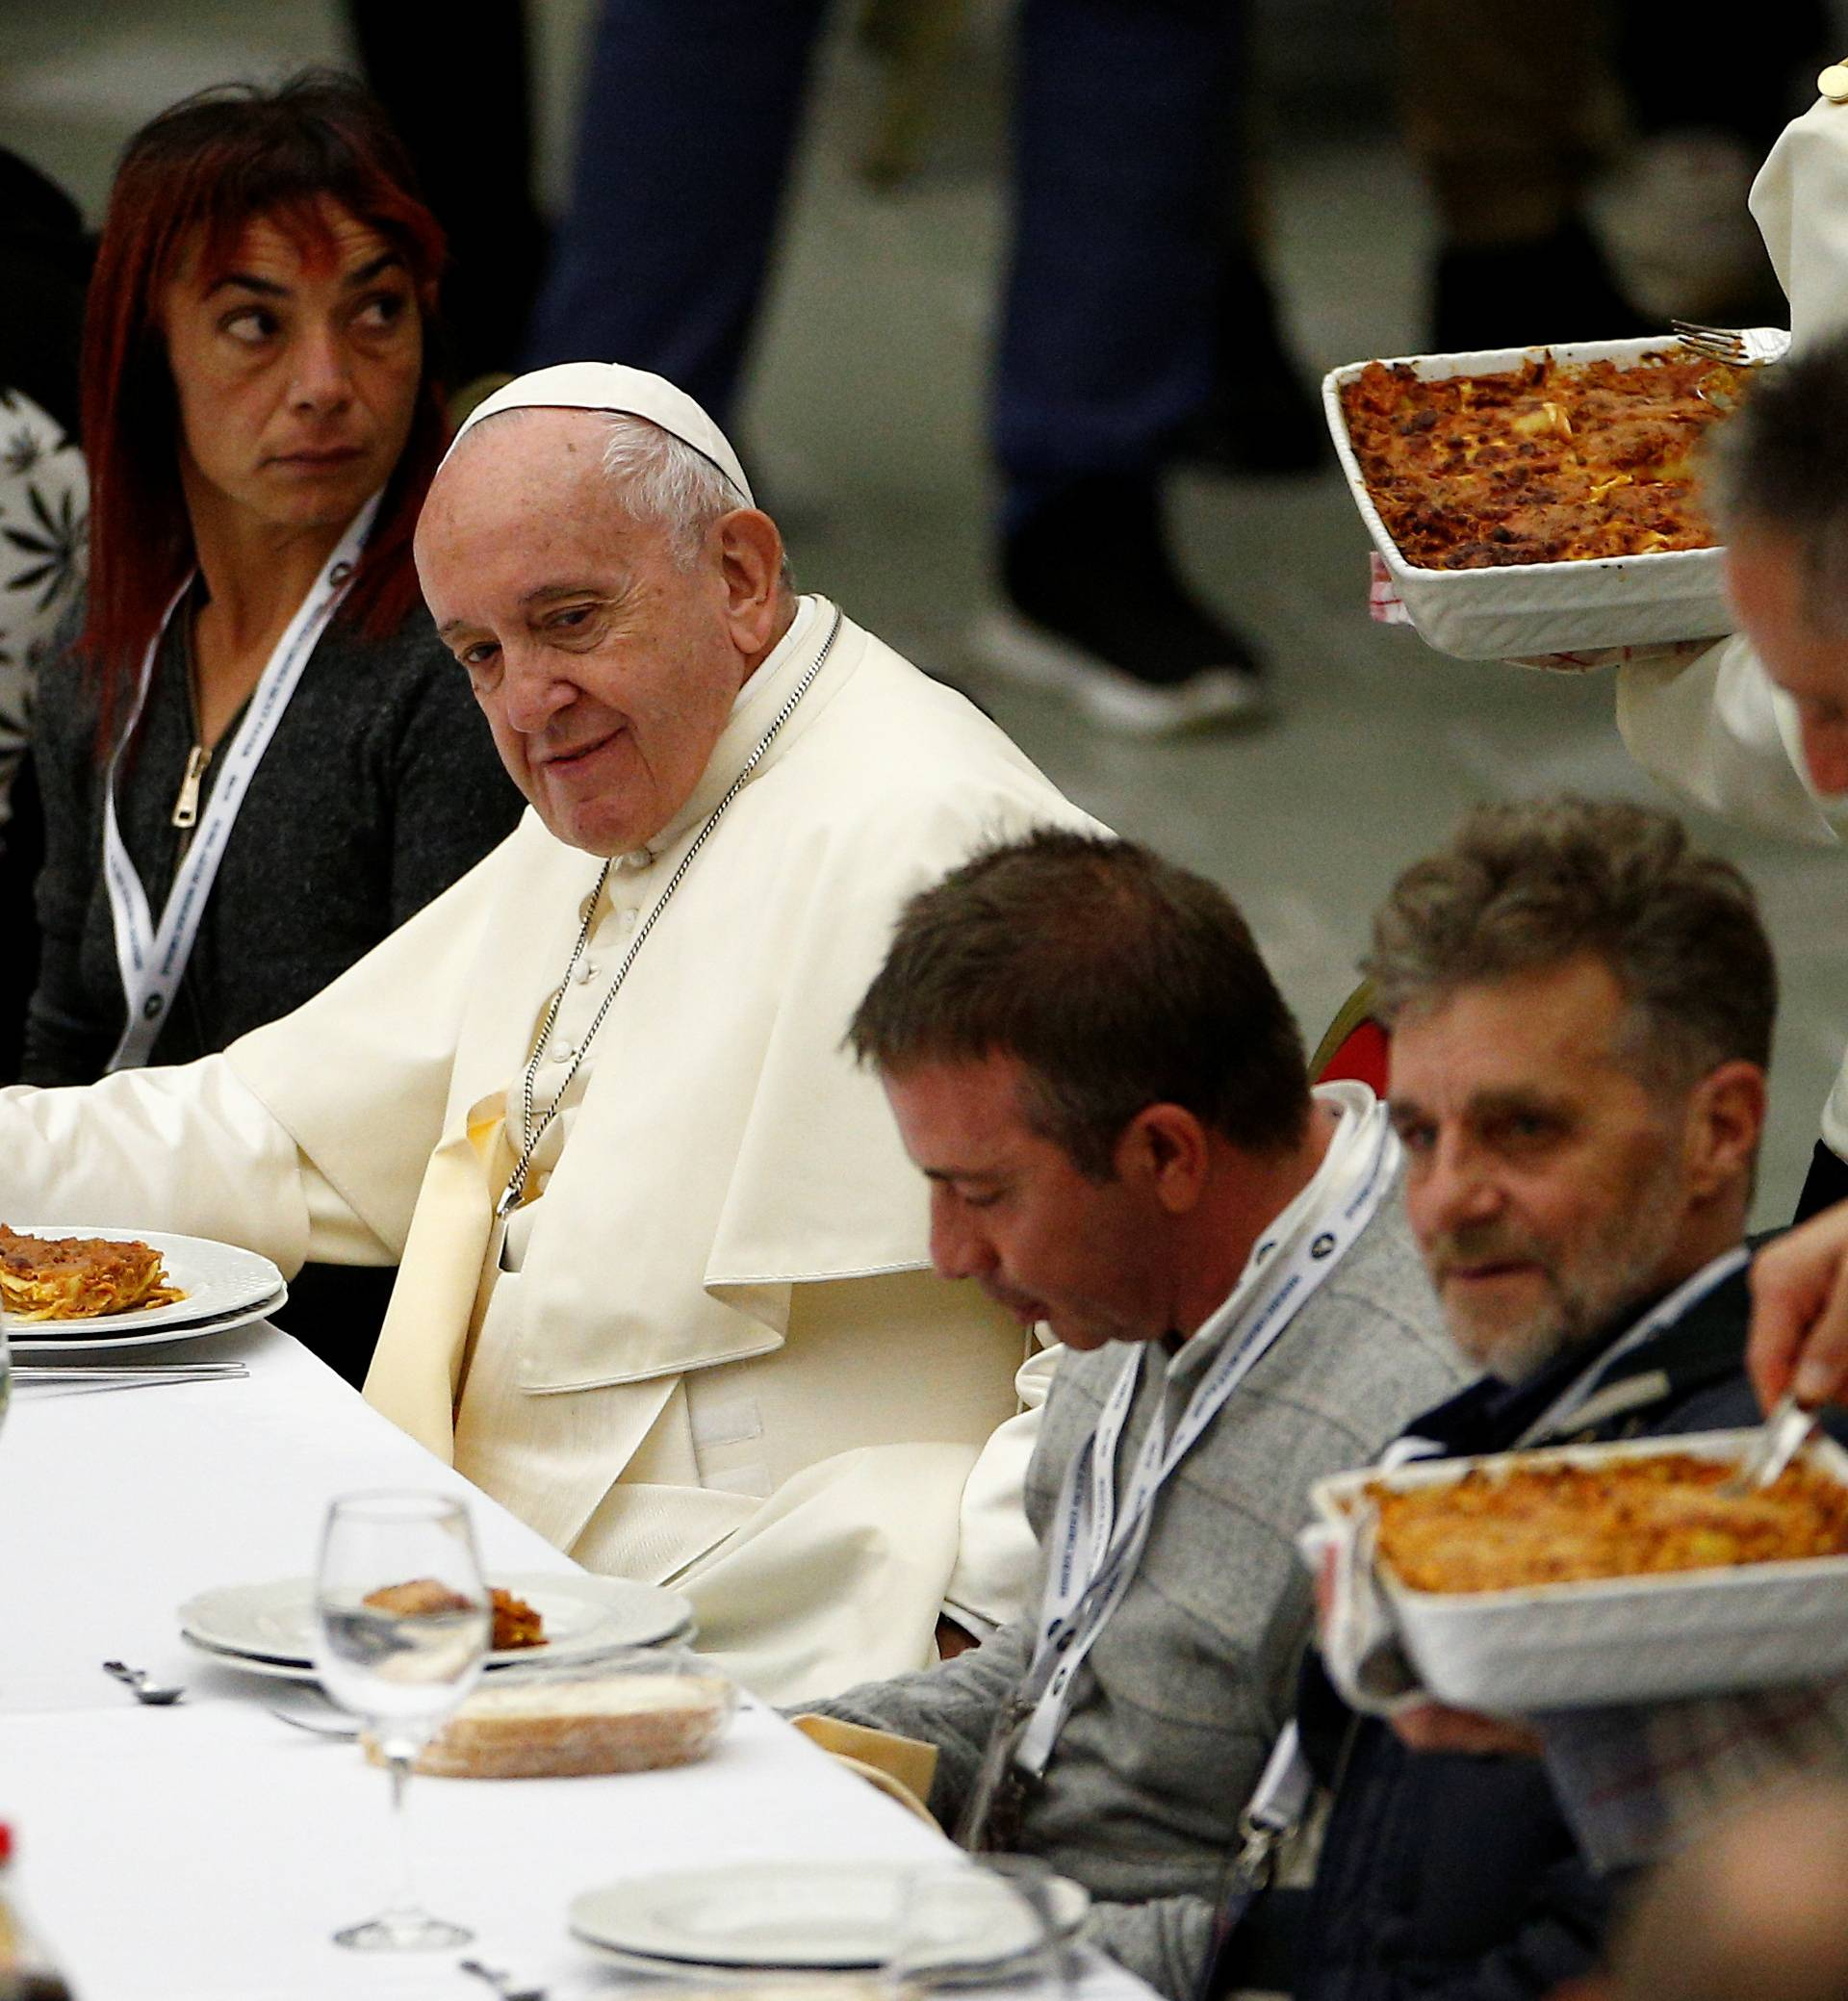 Pope Francis celebrates a Mass marking the Roman Catholic Church's World Day of the Poor